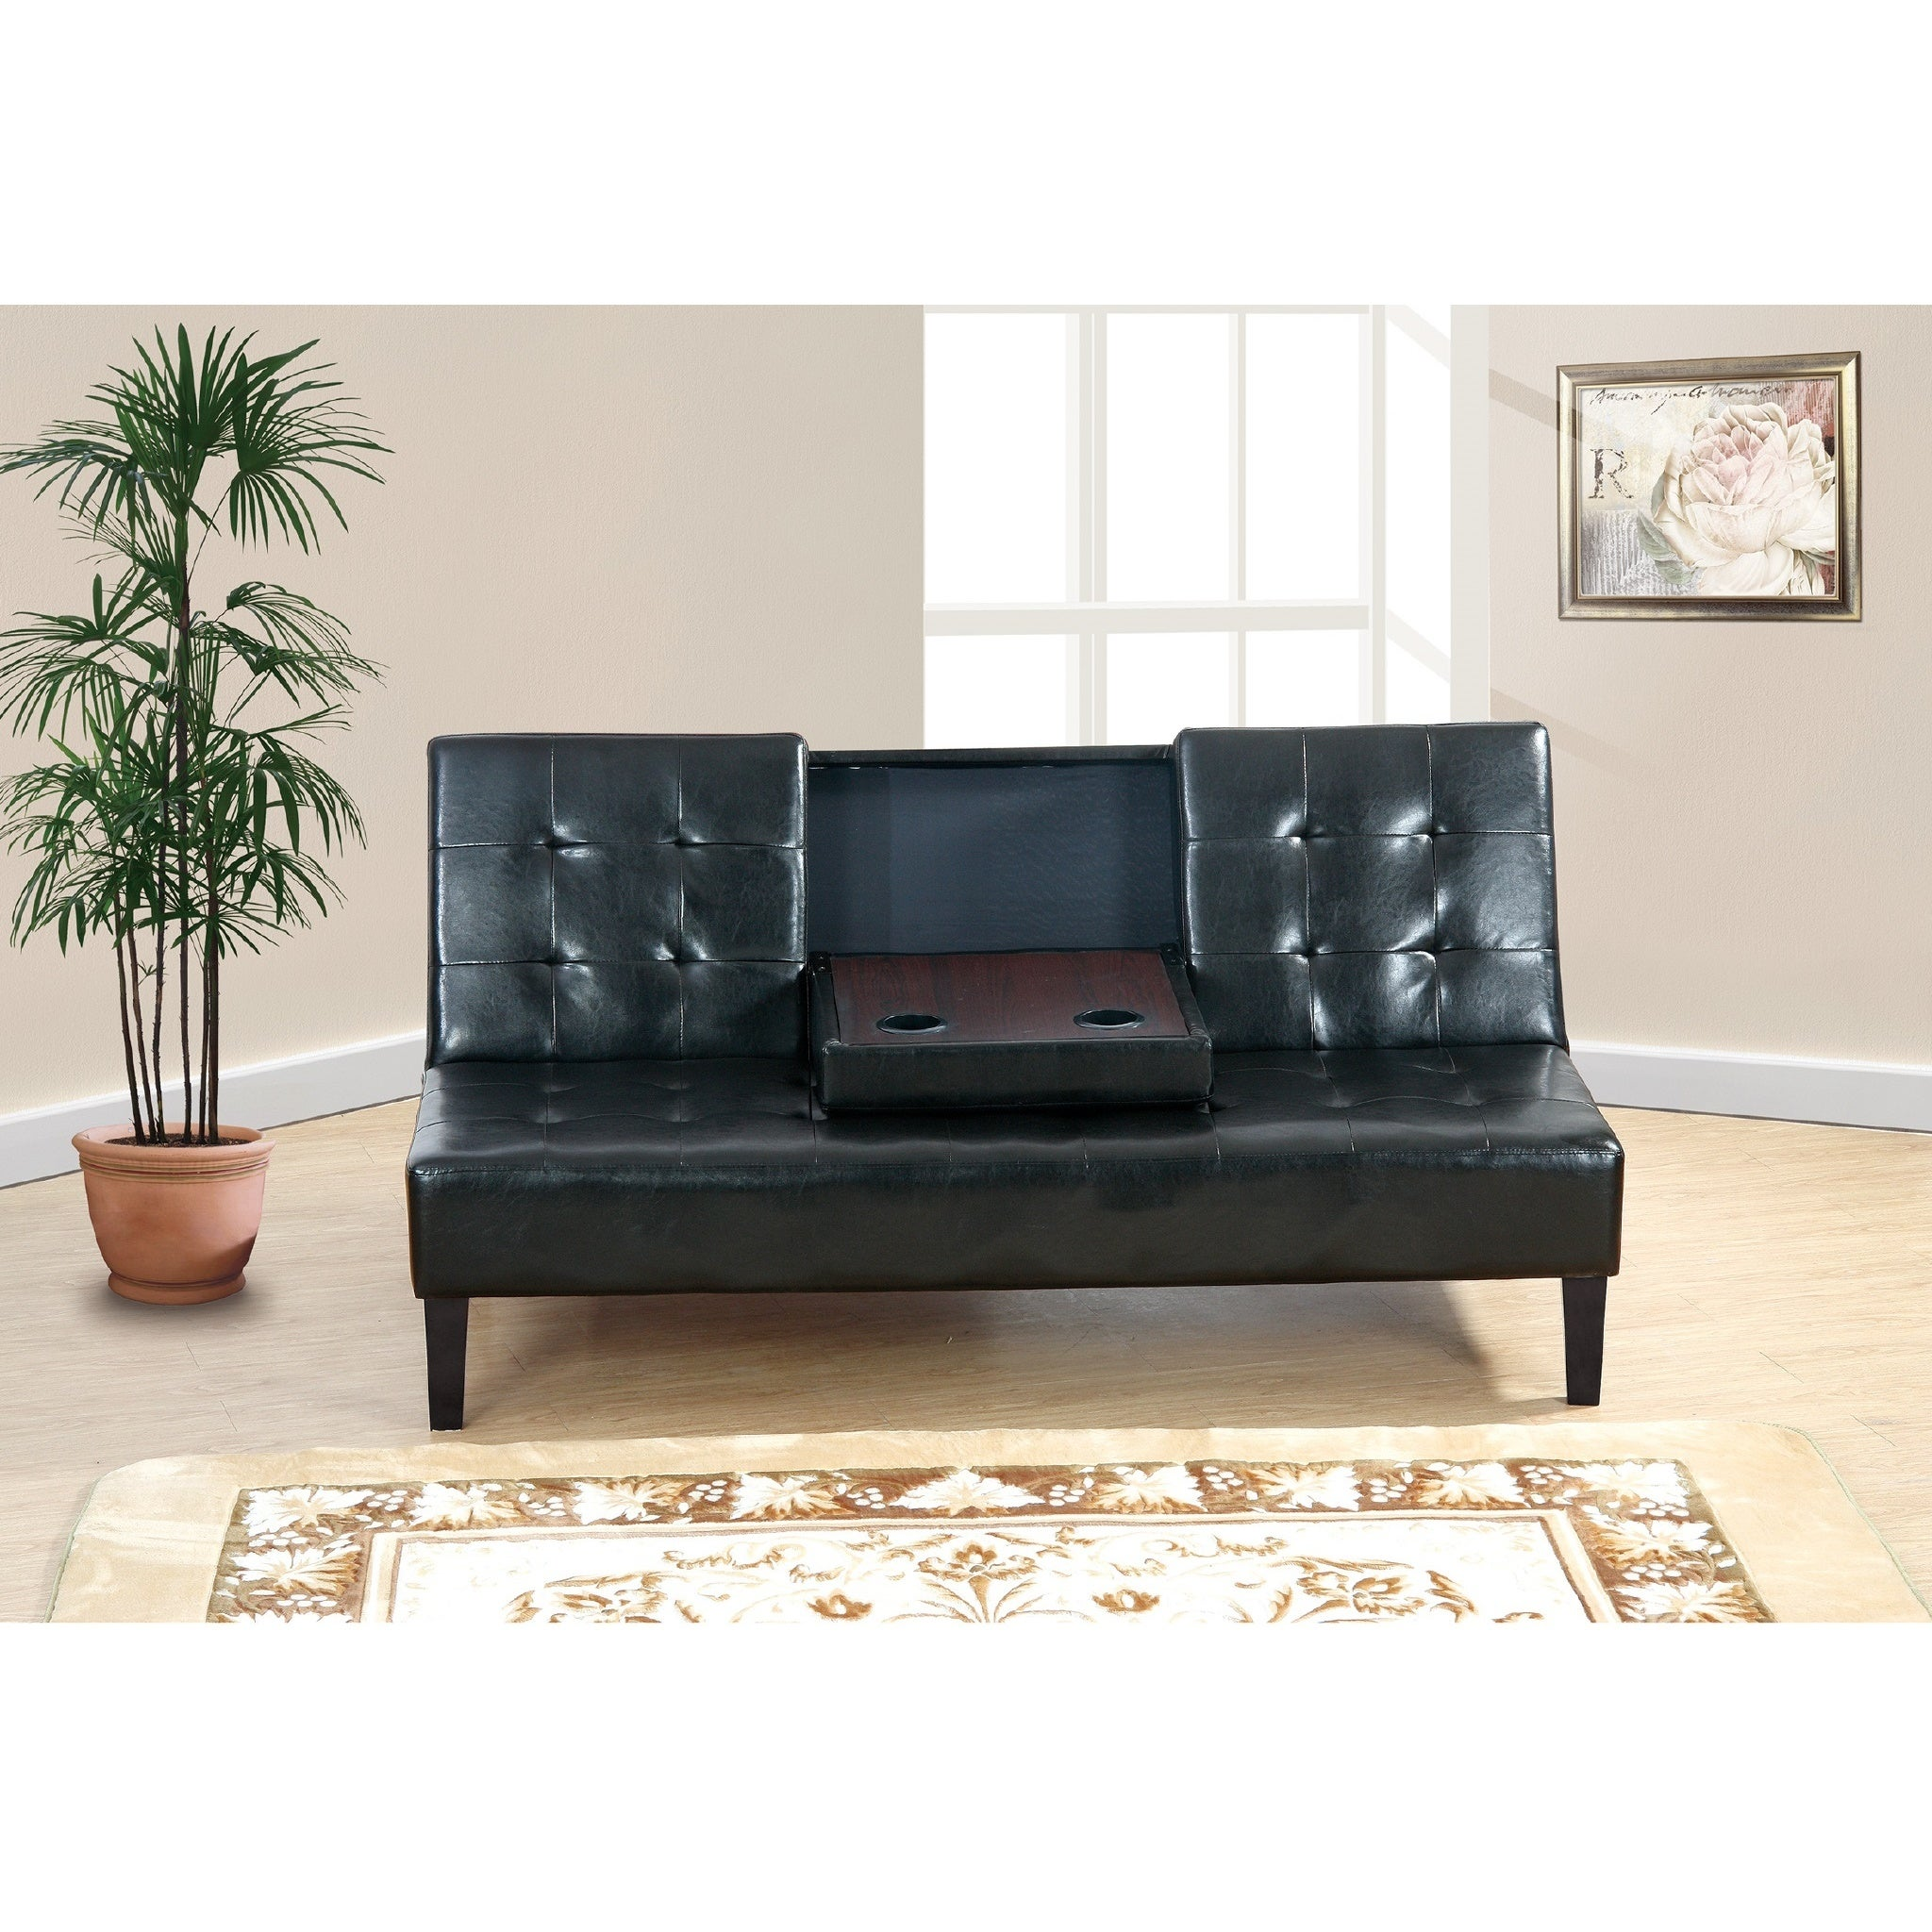 Maplegrove Faux Leather Adjustable Sleeper Sofa   Free Shipping Today    Overstock.com   22836671